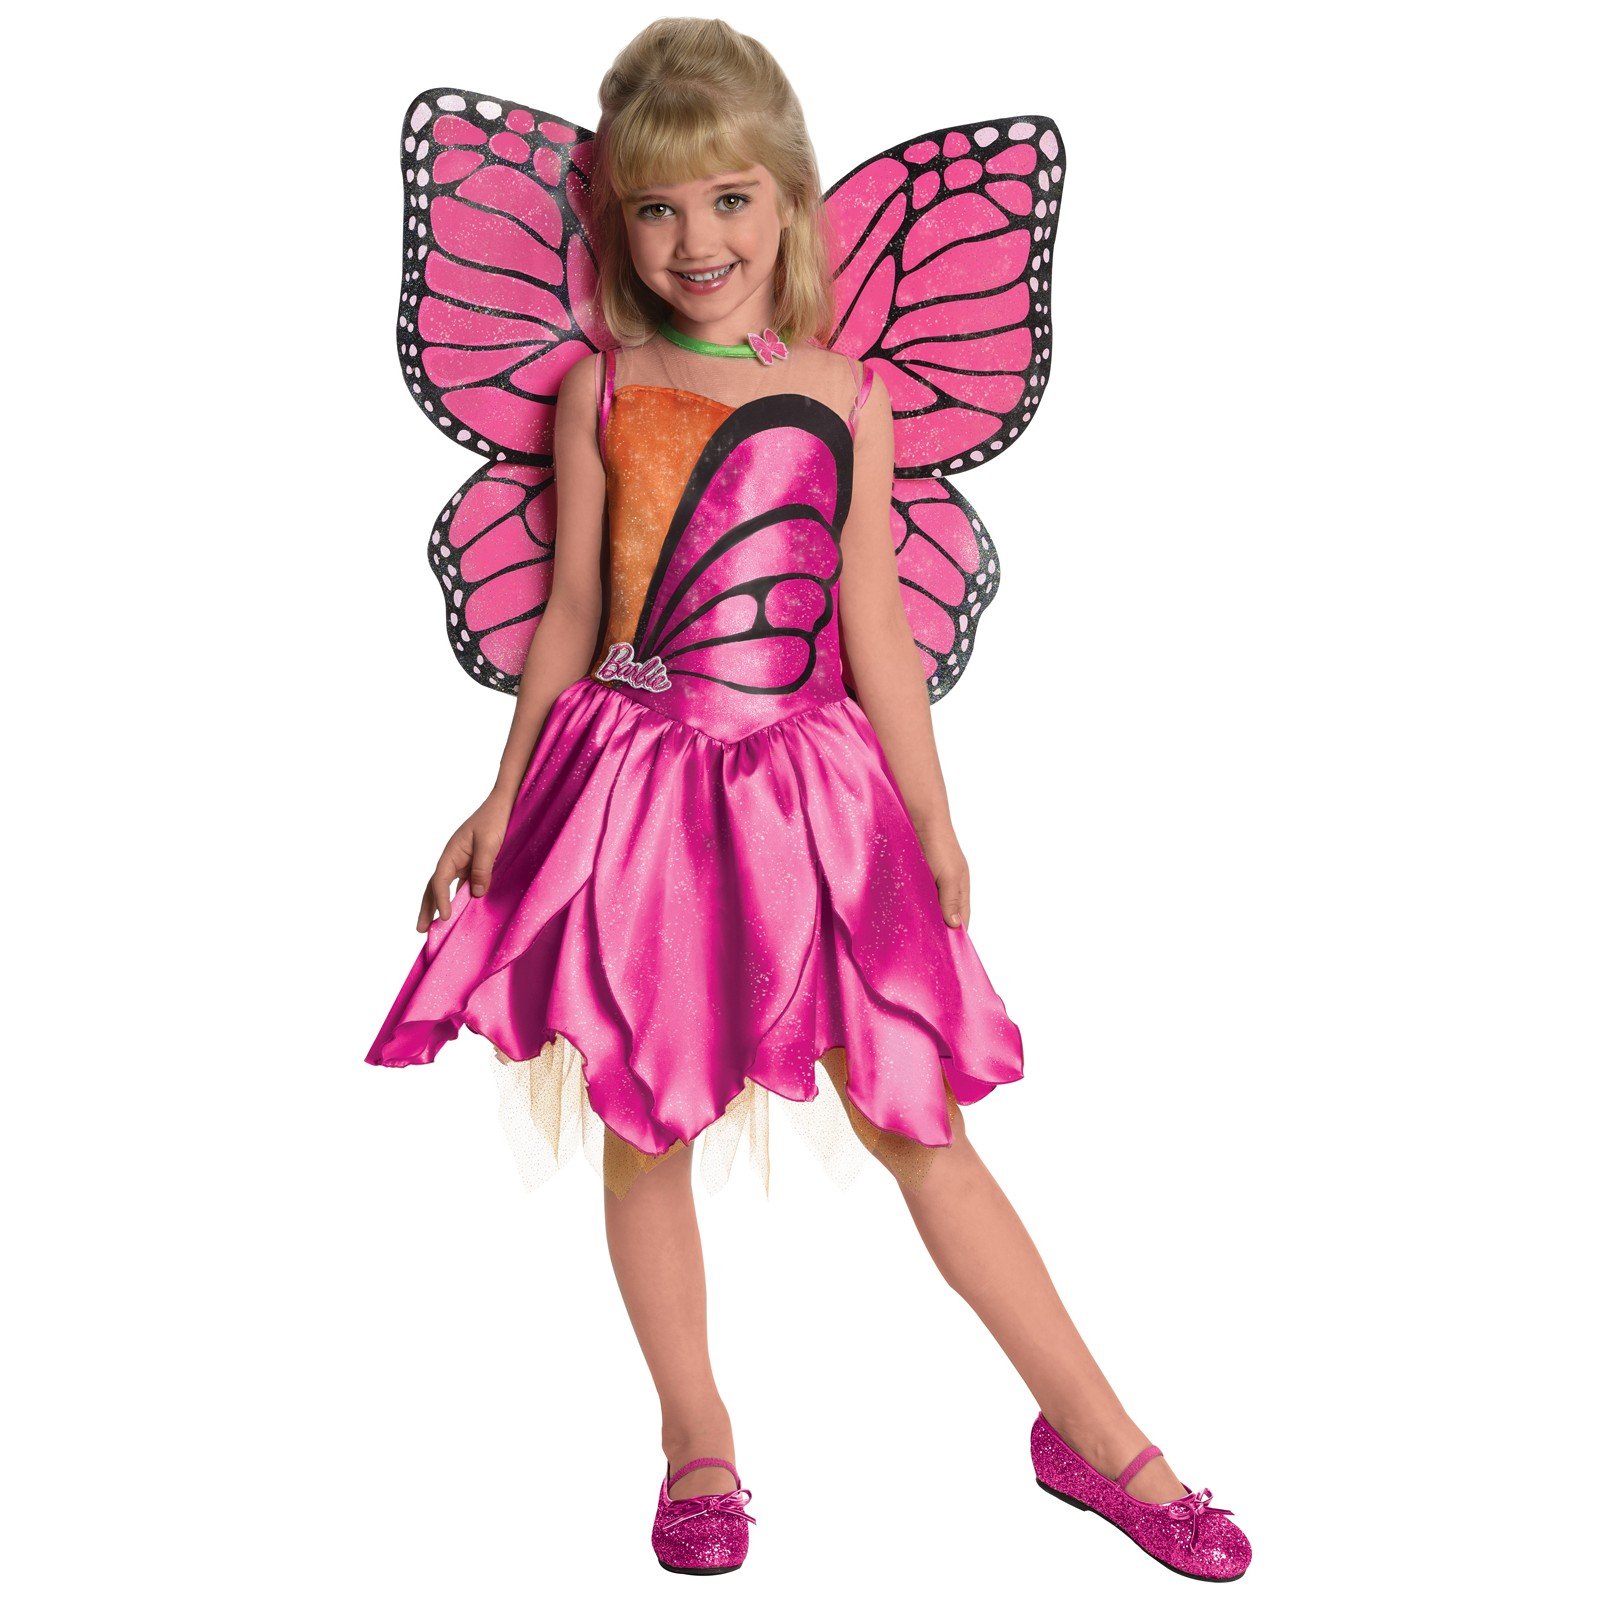 Costumes. The #1 Choice for Costumes & Accessories since Halloween, Theatrical, Cosplay, Dance, Movie, Theme, Pets, etc.